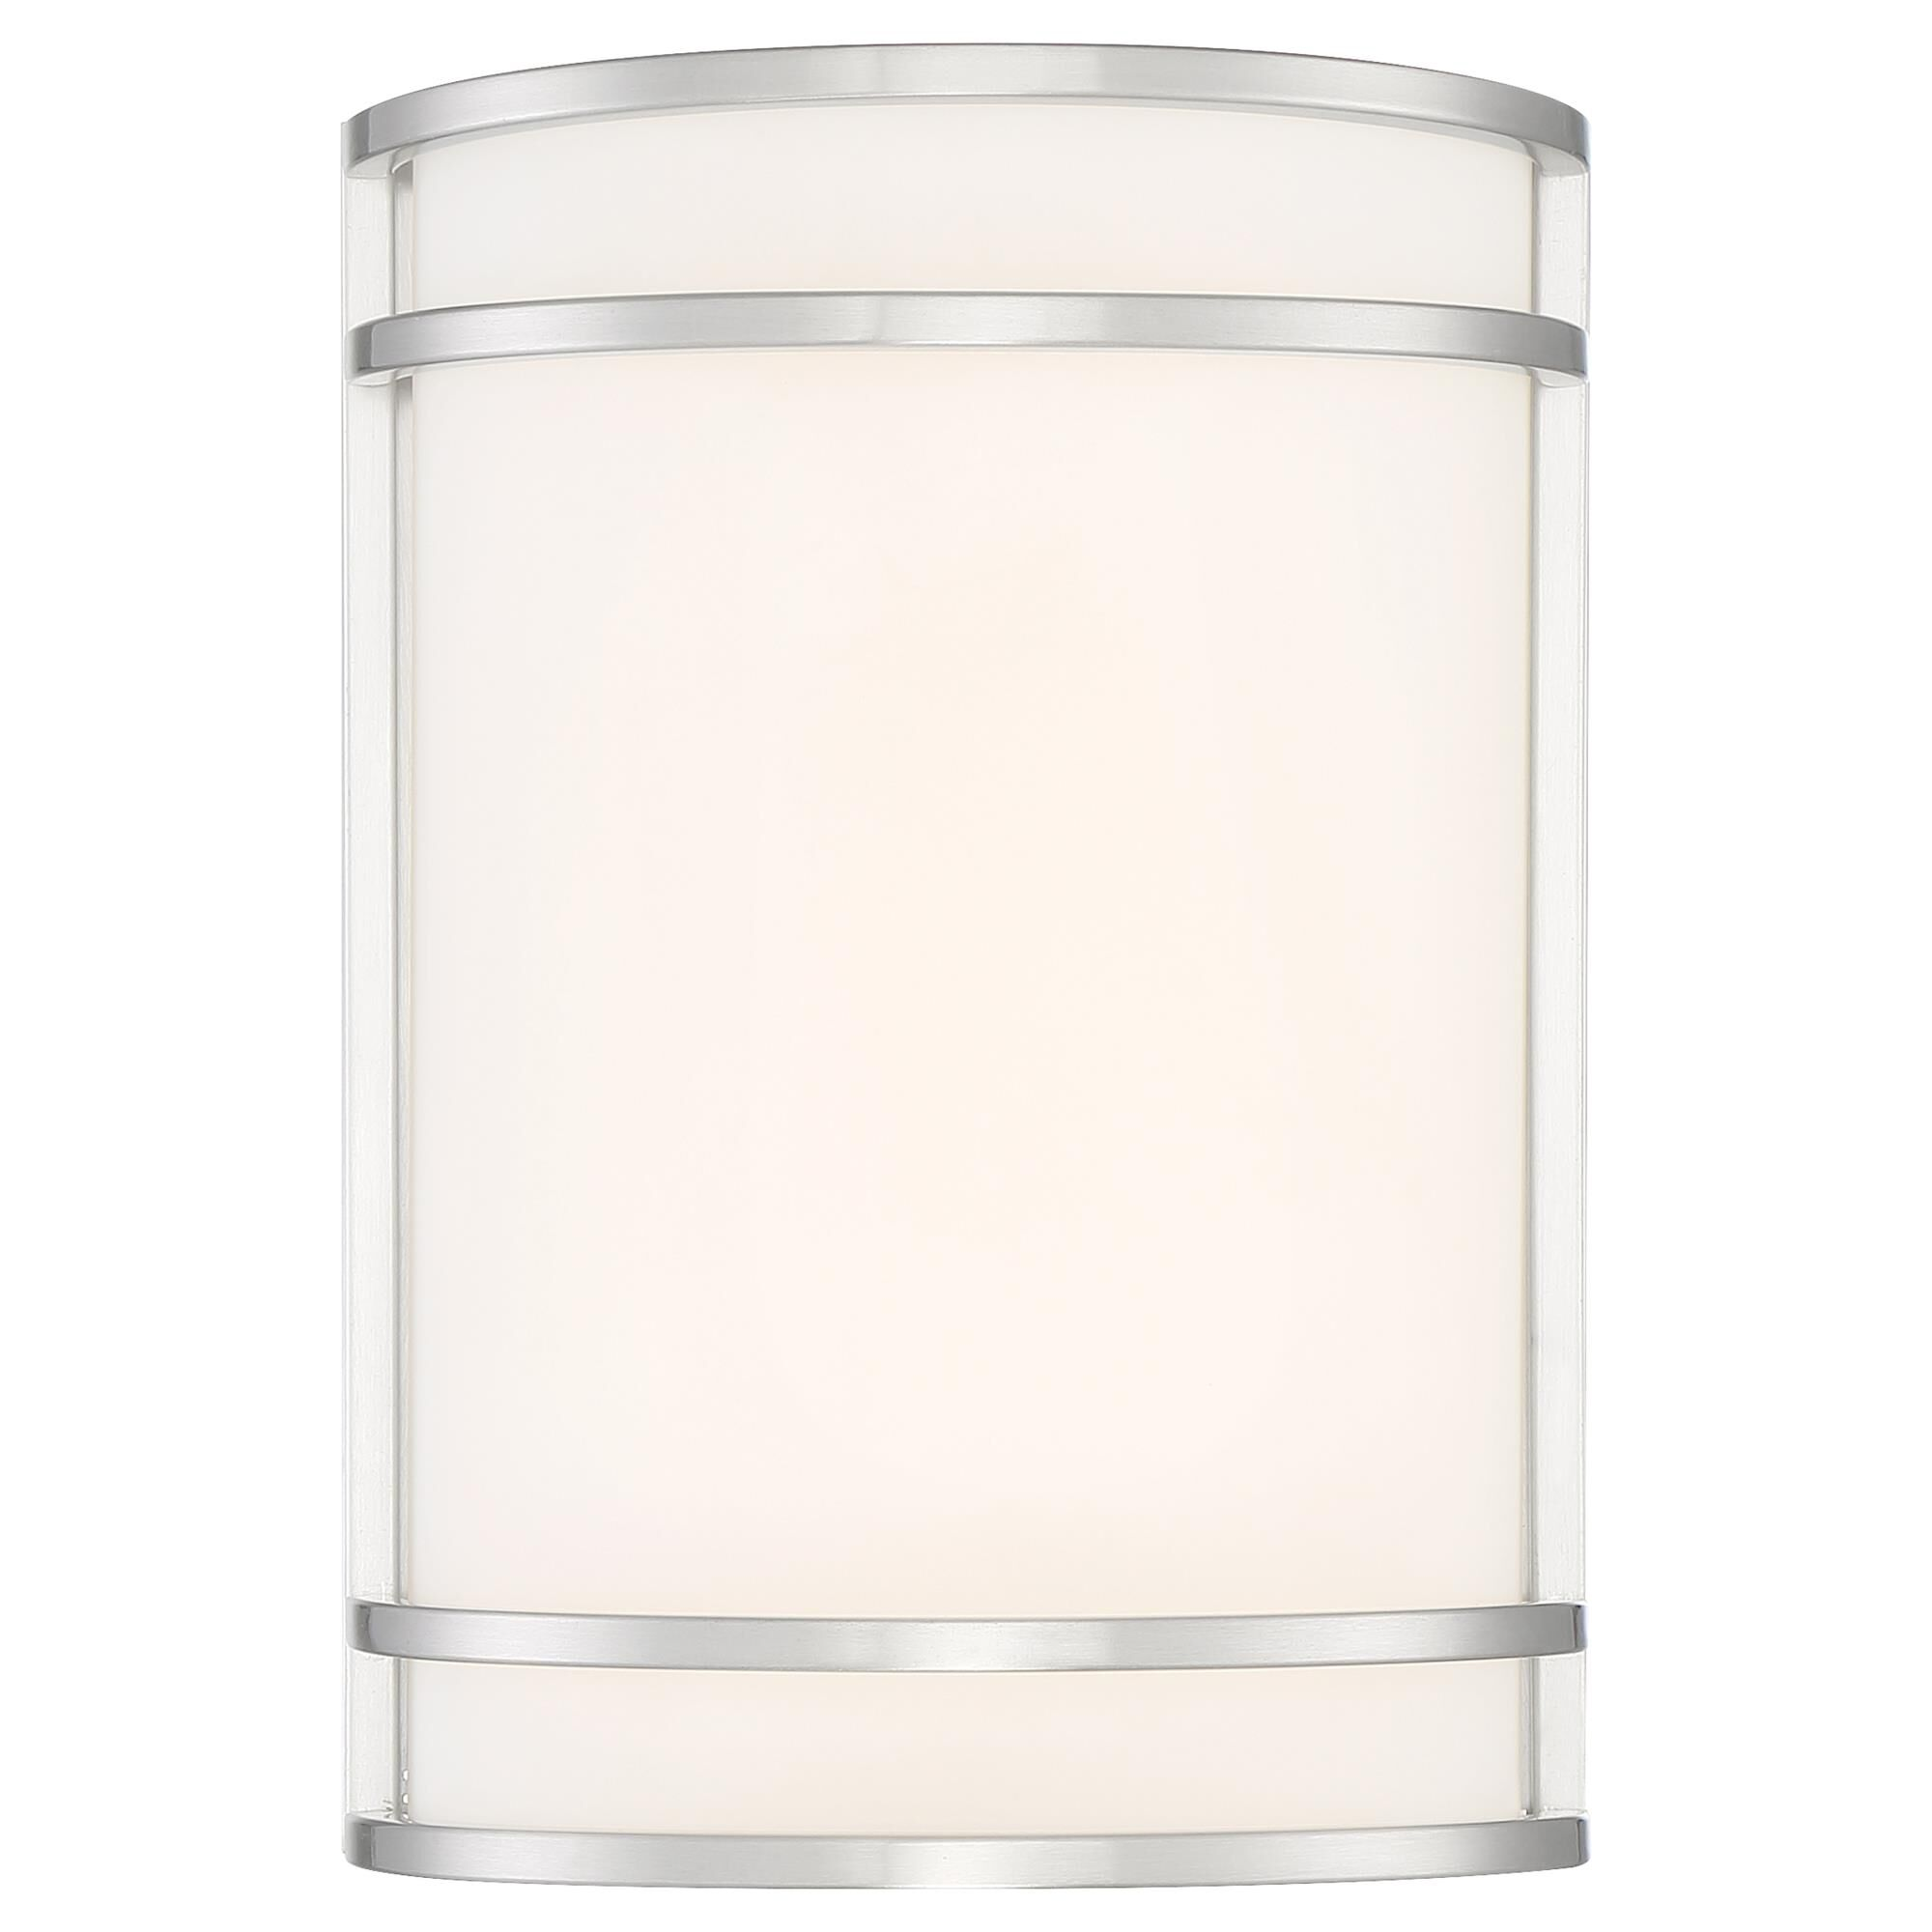 Access Lighting Lola 10 Inch LED Wall Sconce Lola 62165LEDDLP BSFST Modern Contemporary